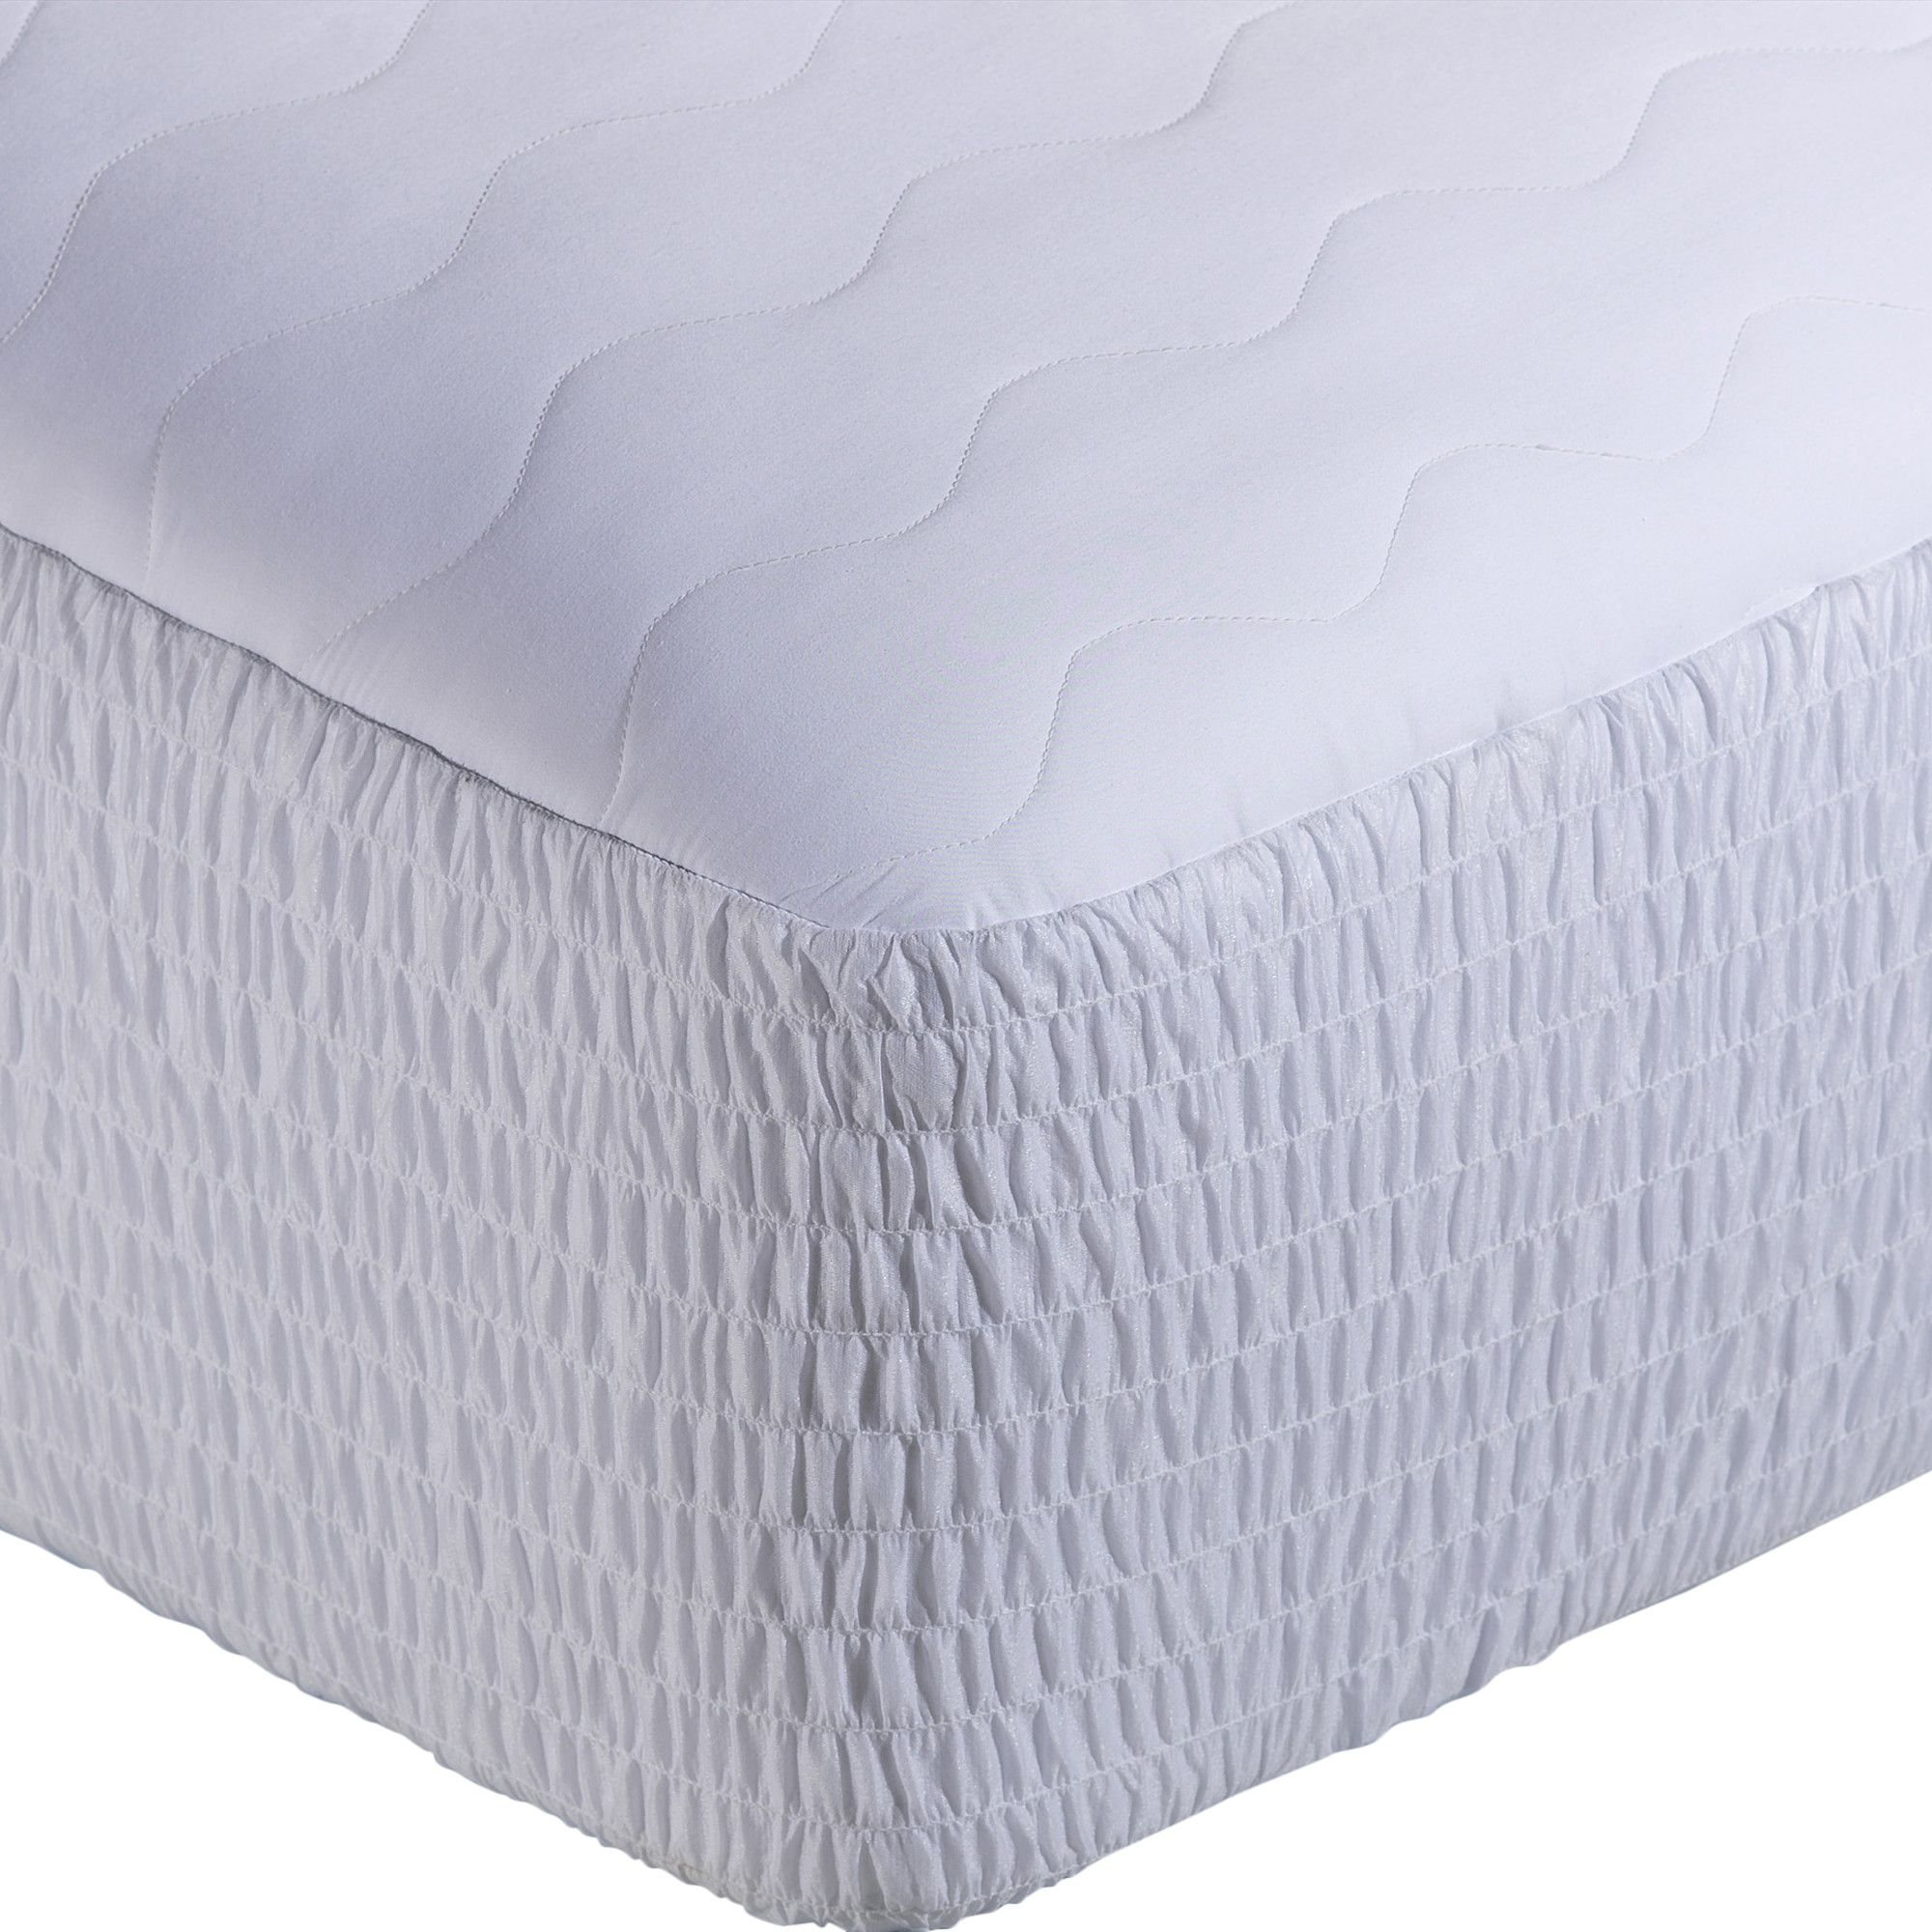 fiona mattress pad bedding pinterest mattress pad and mattress